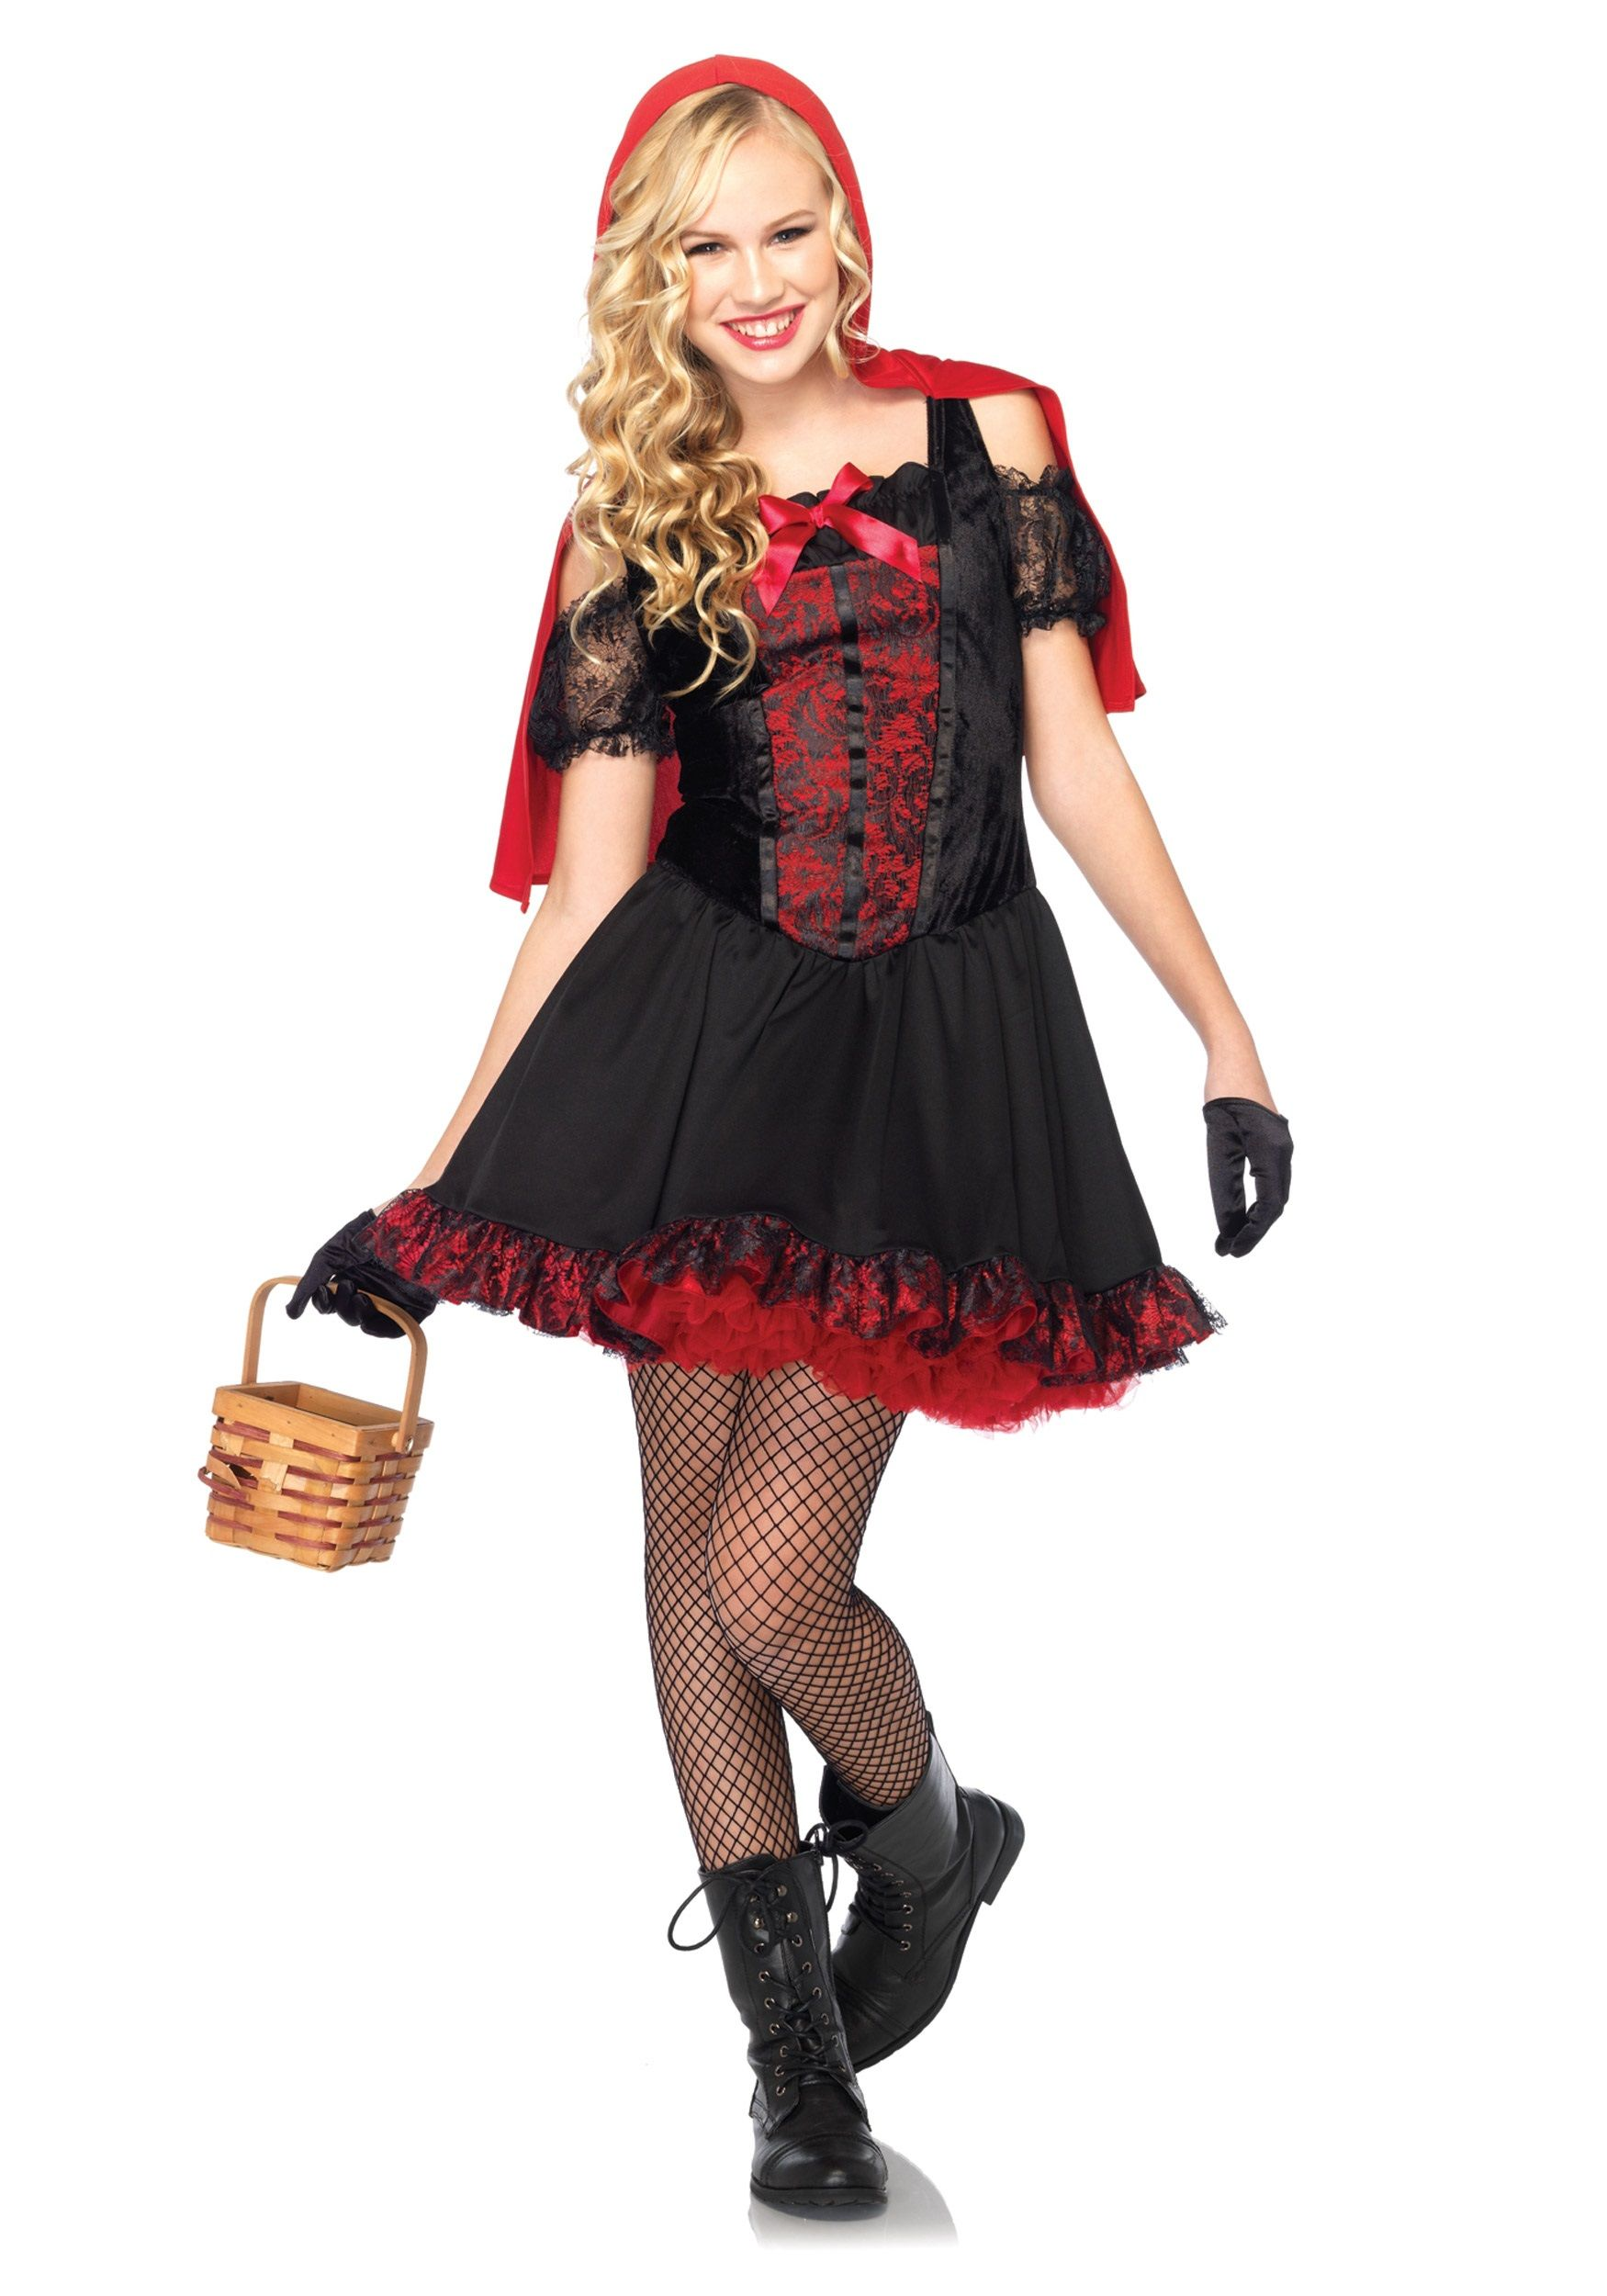 Cute Teen Girl Halloween Costume Ideas  Best Costumes -6539